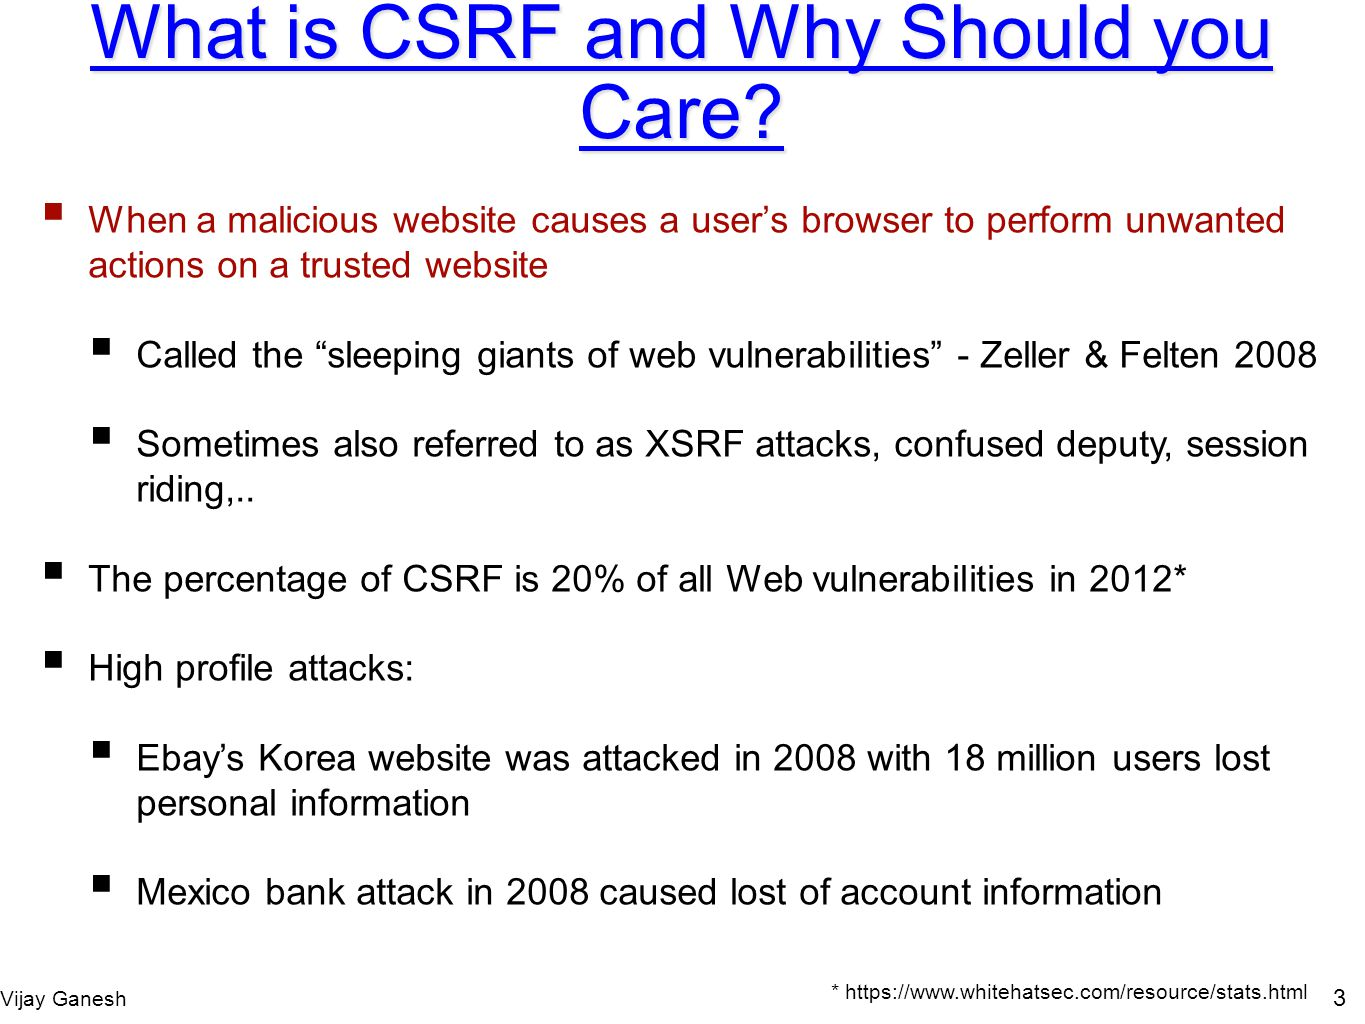 What is CSRF and Why Should you Care